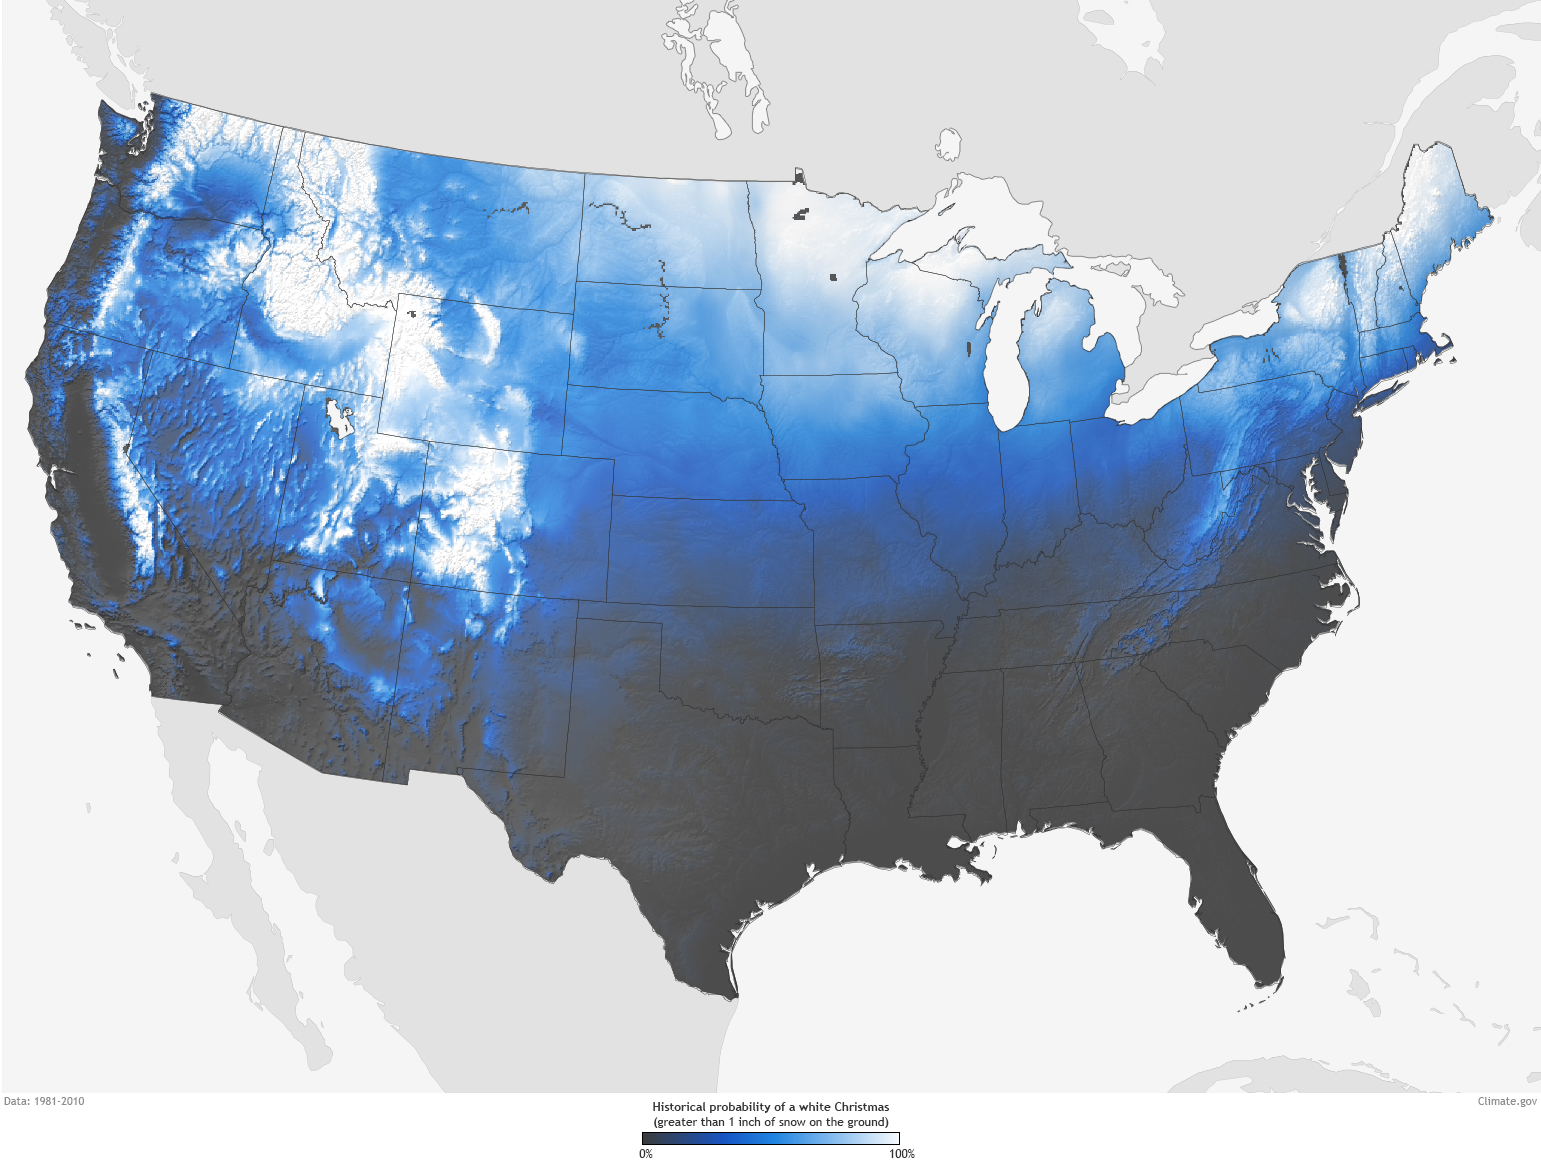 http://www.climate.gov/news-features/featured-images/are-you-dreaming-white-christmas